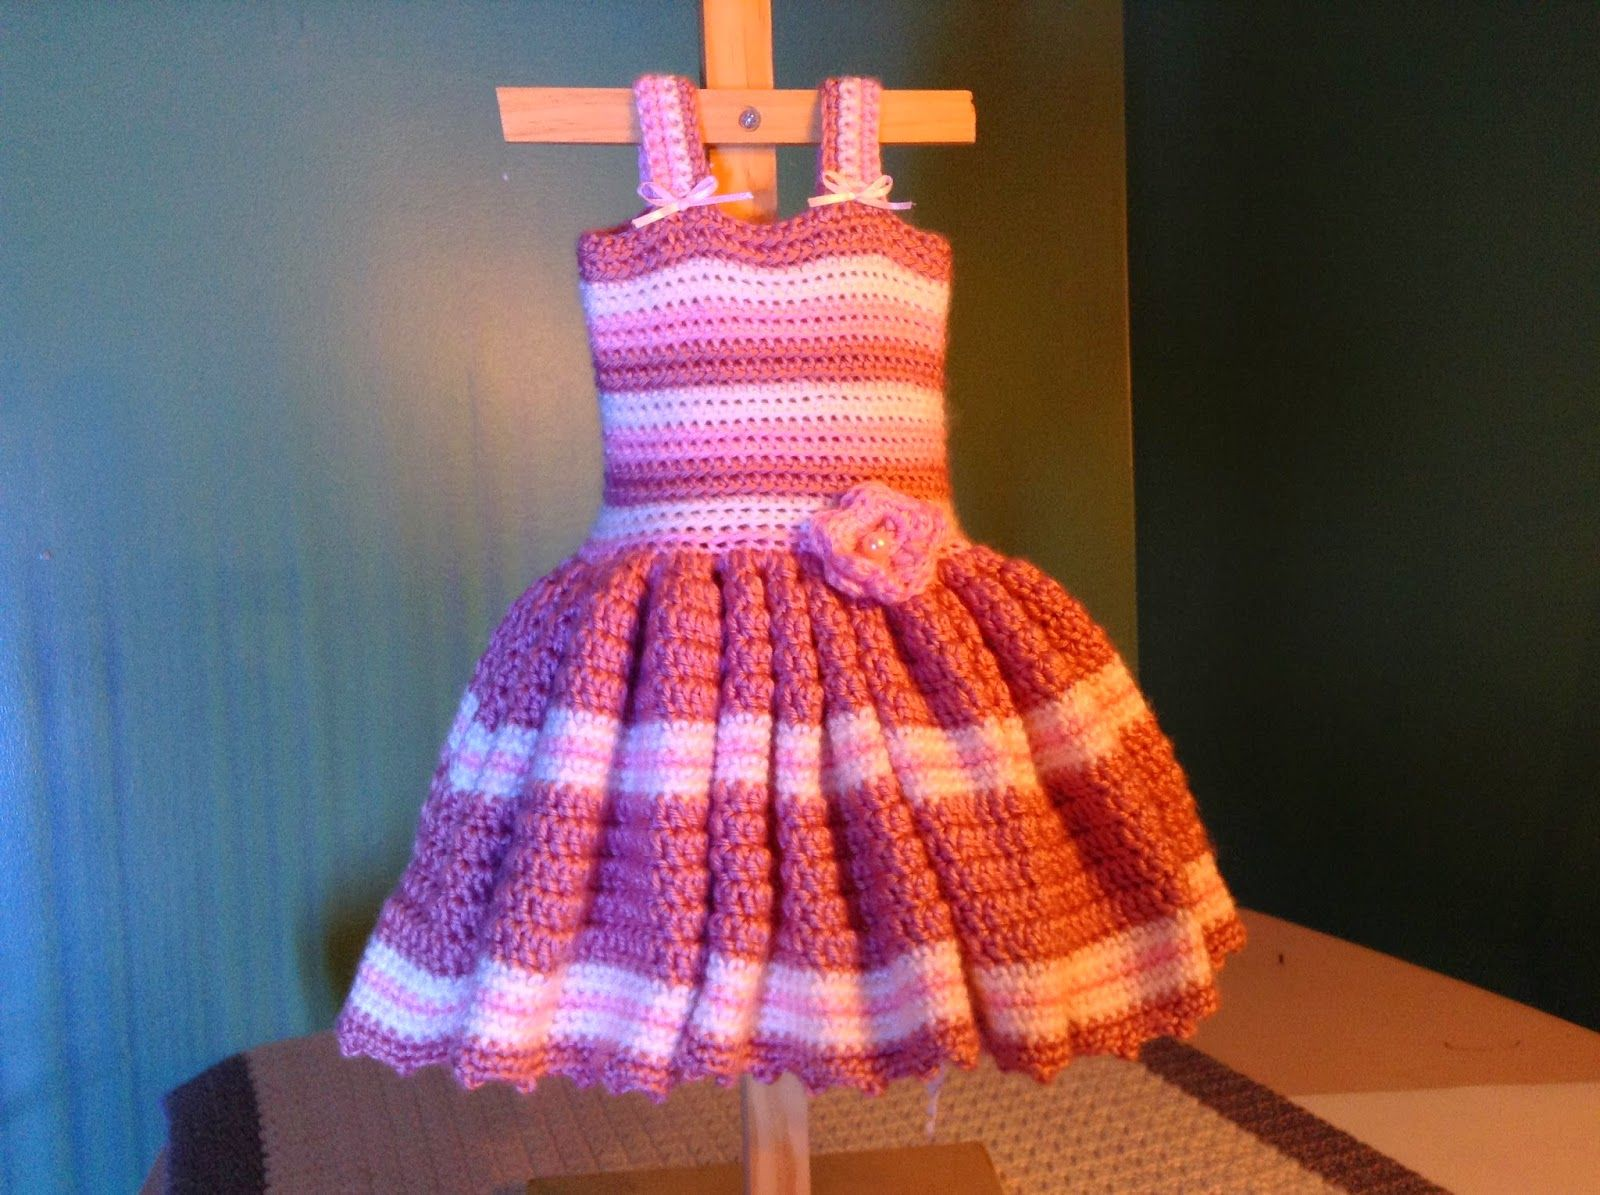 Annas free baby crochet dress patterns inspiration and ideas annas free baby crochet dress patterns inspiration and ideas free patterns bankloansurffo Image collections